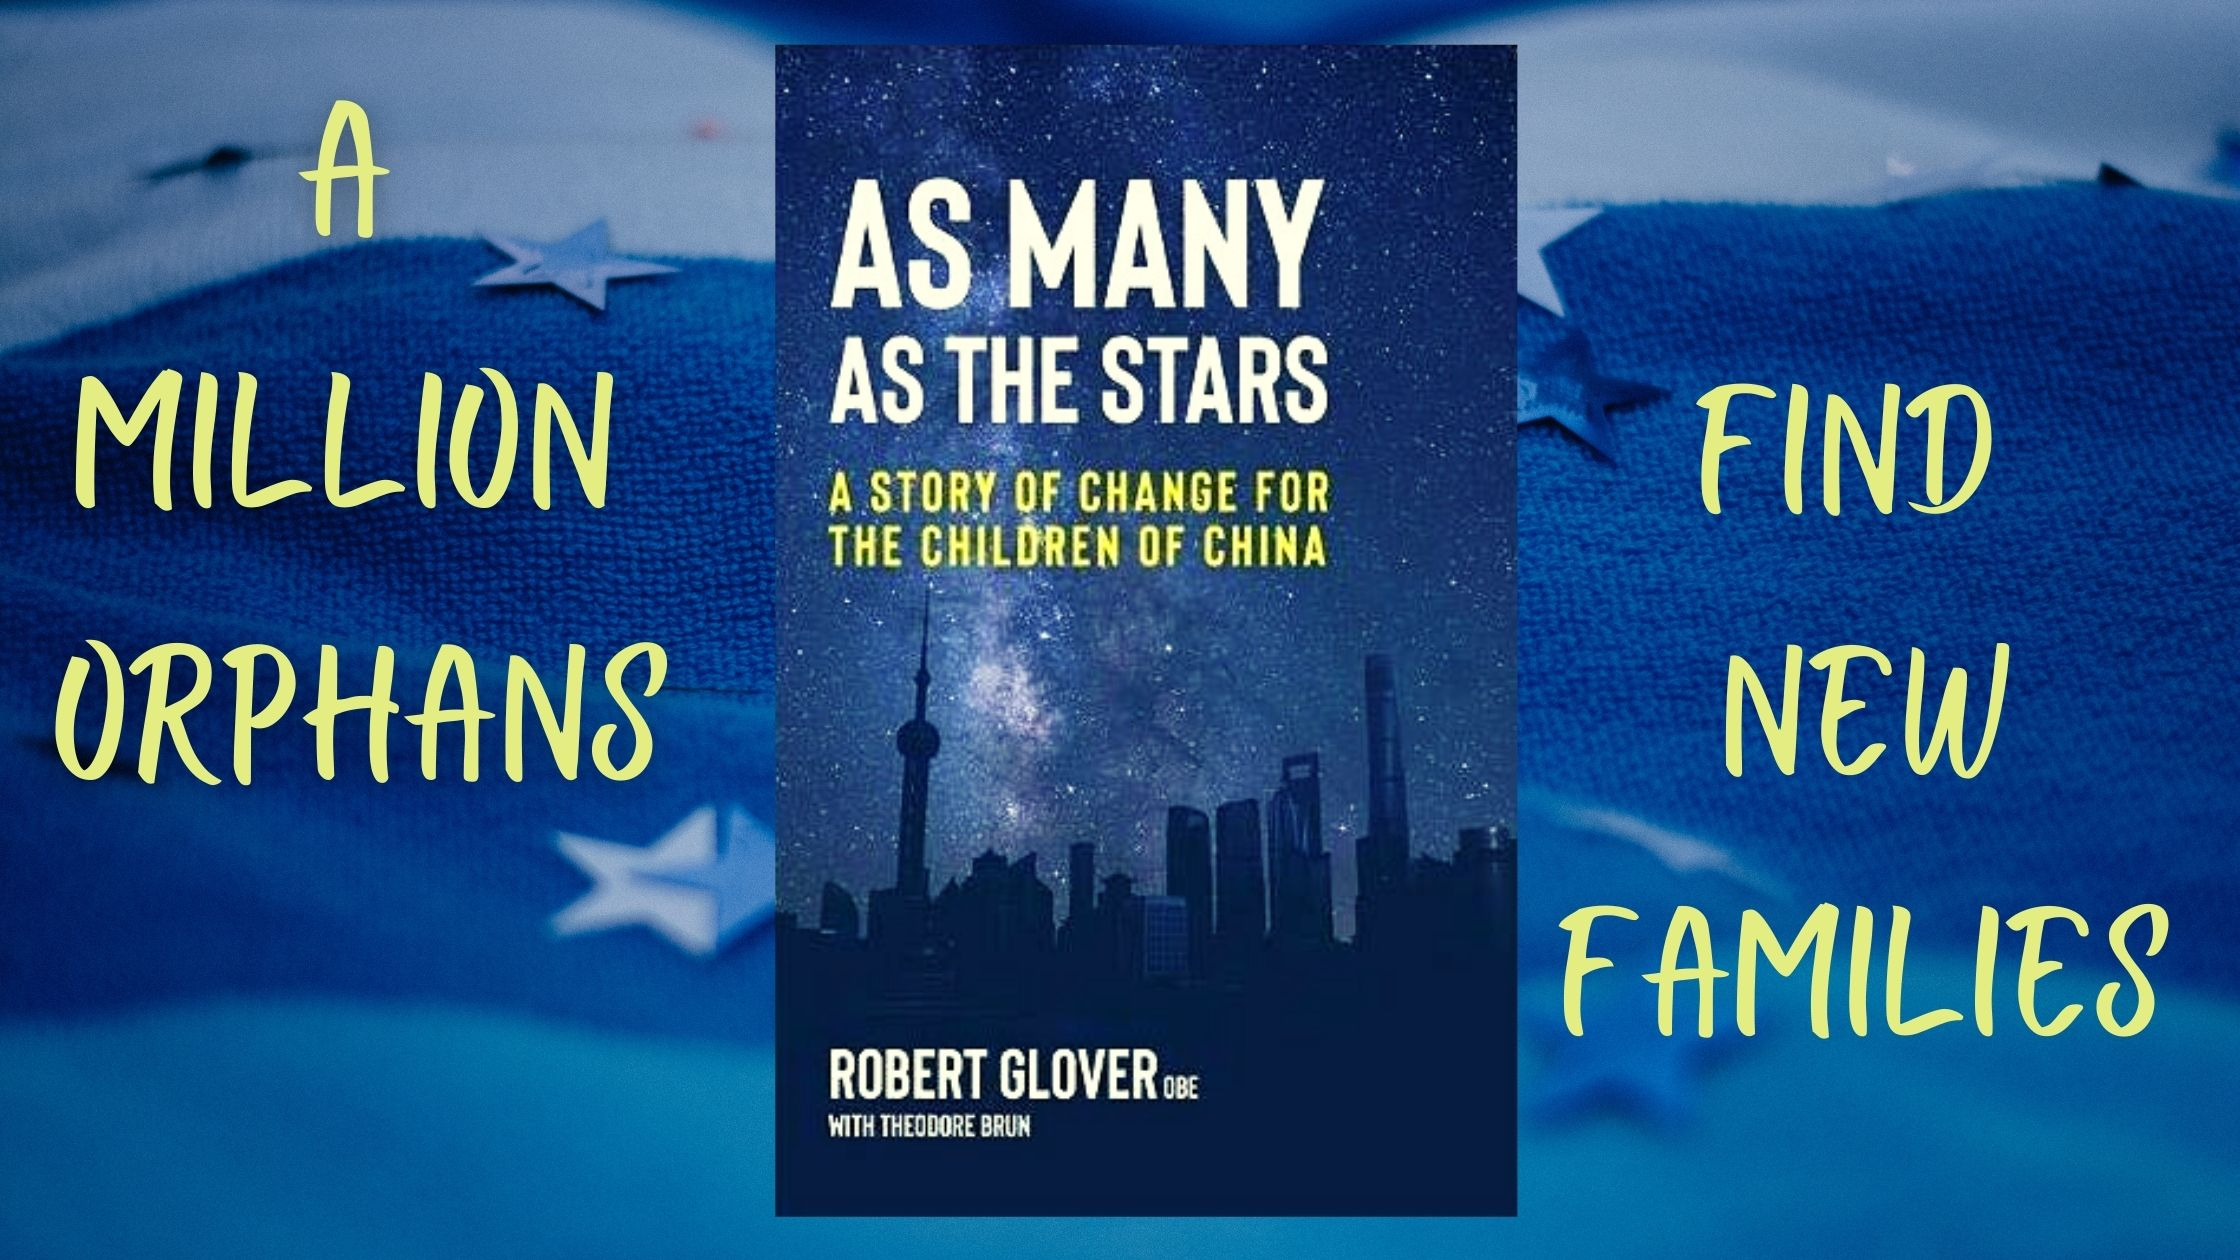 The author's story which led to the book 'As Many as the Stars'